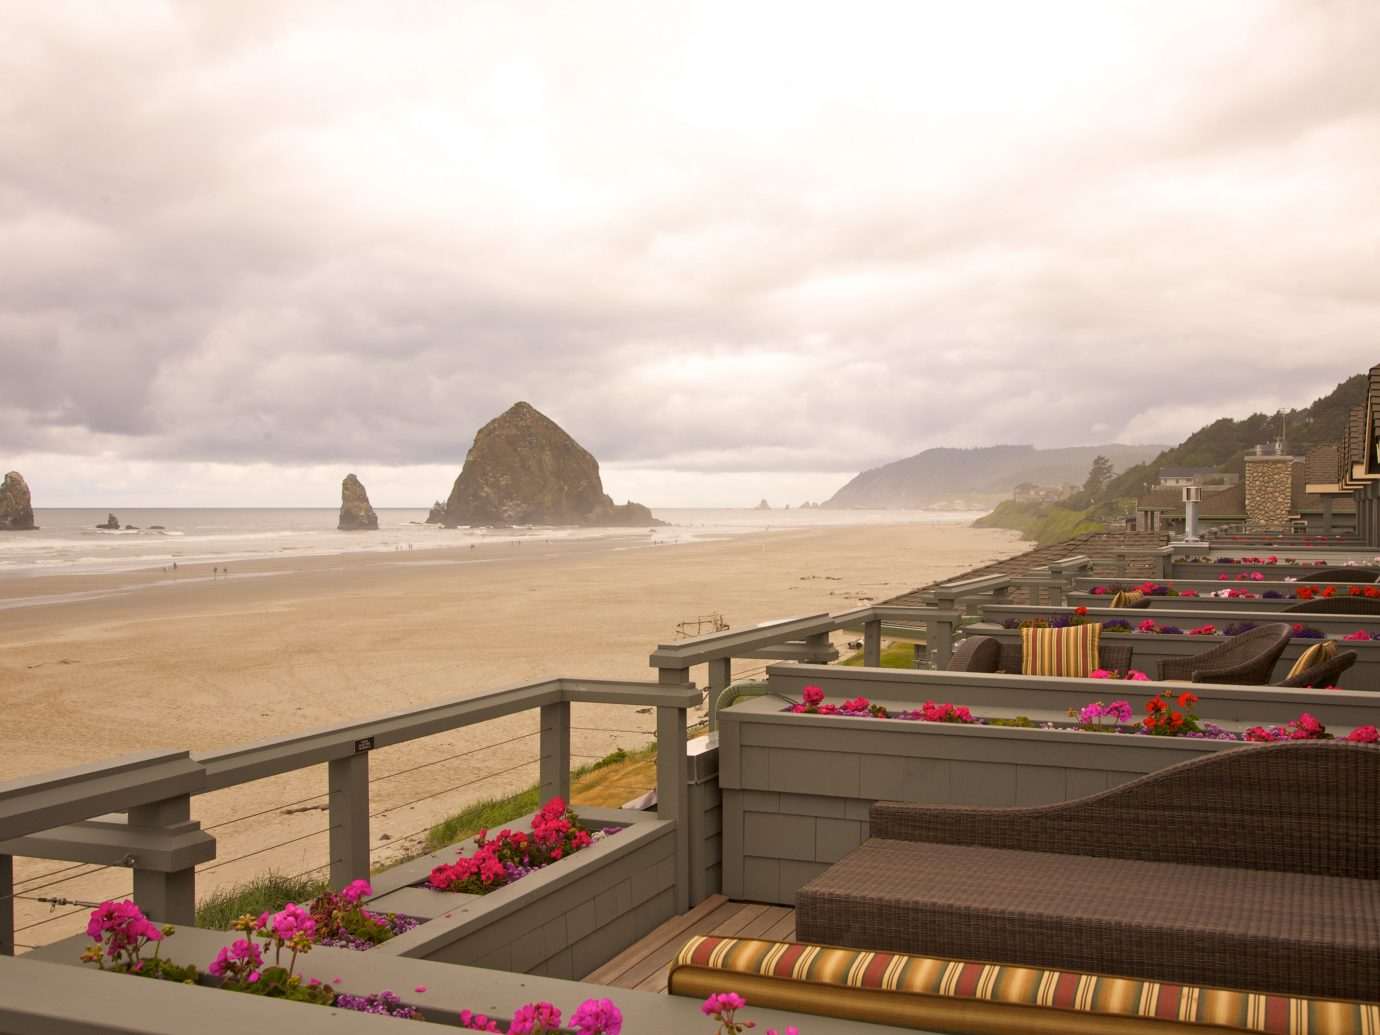 Deck at Stephanie Inn, Oregon overlooking the ocean